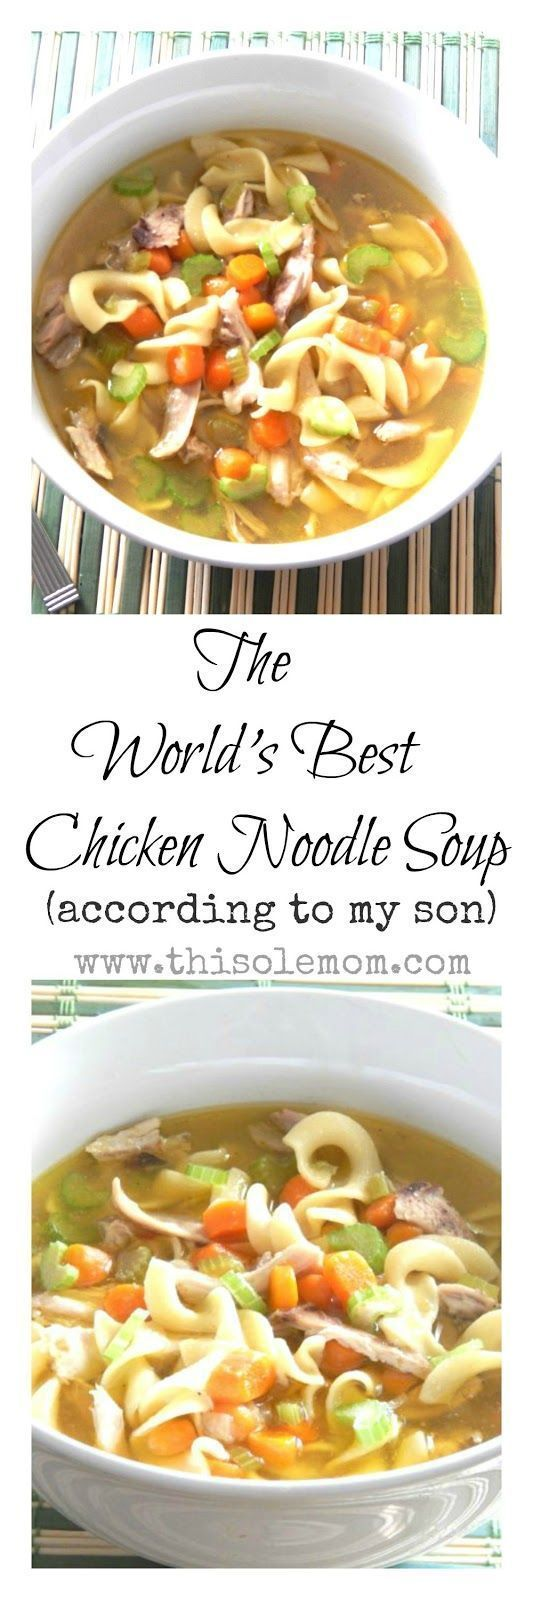 The World's Best Homemade Chicken Noodle Soup